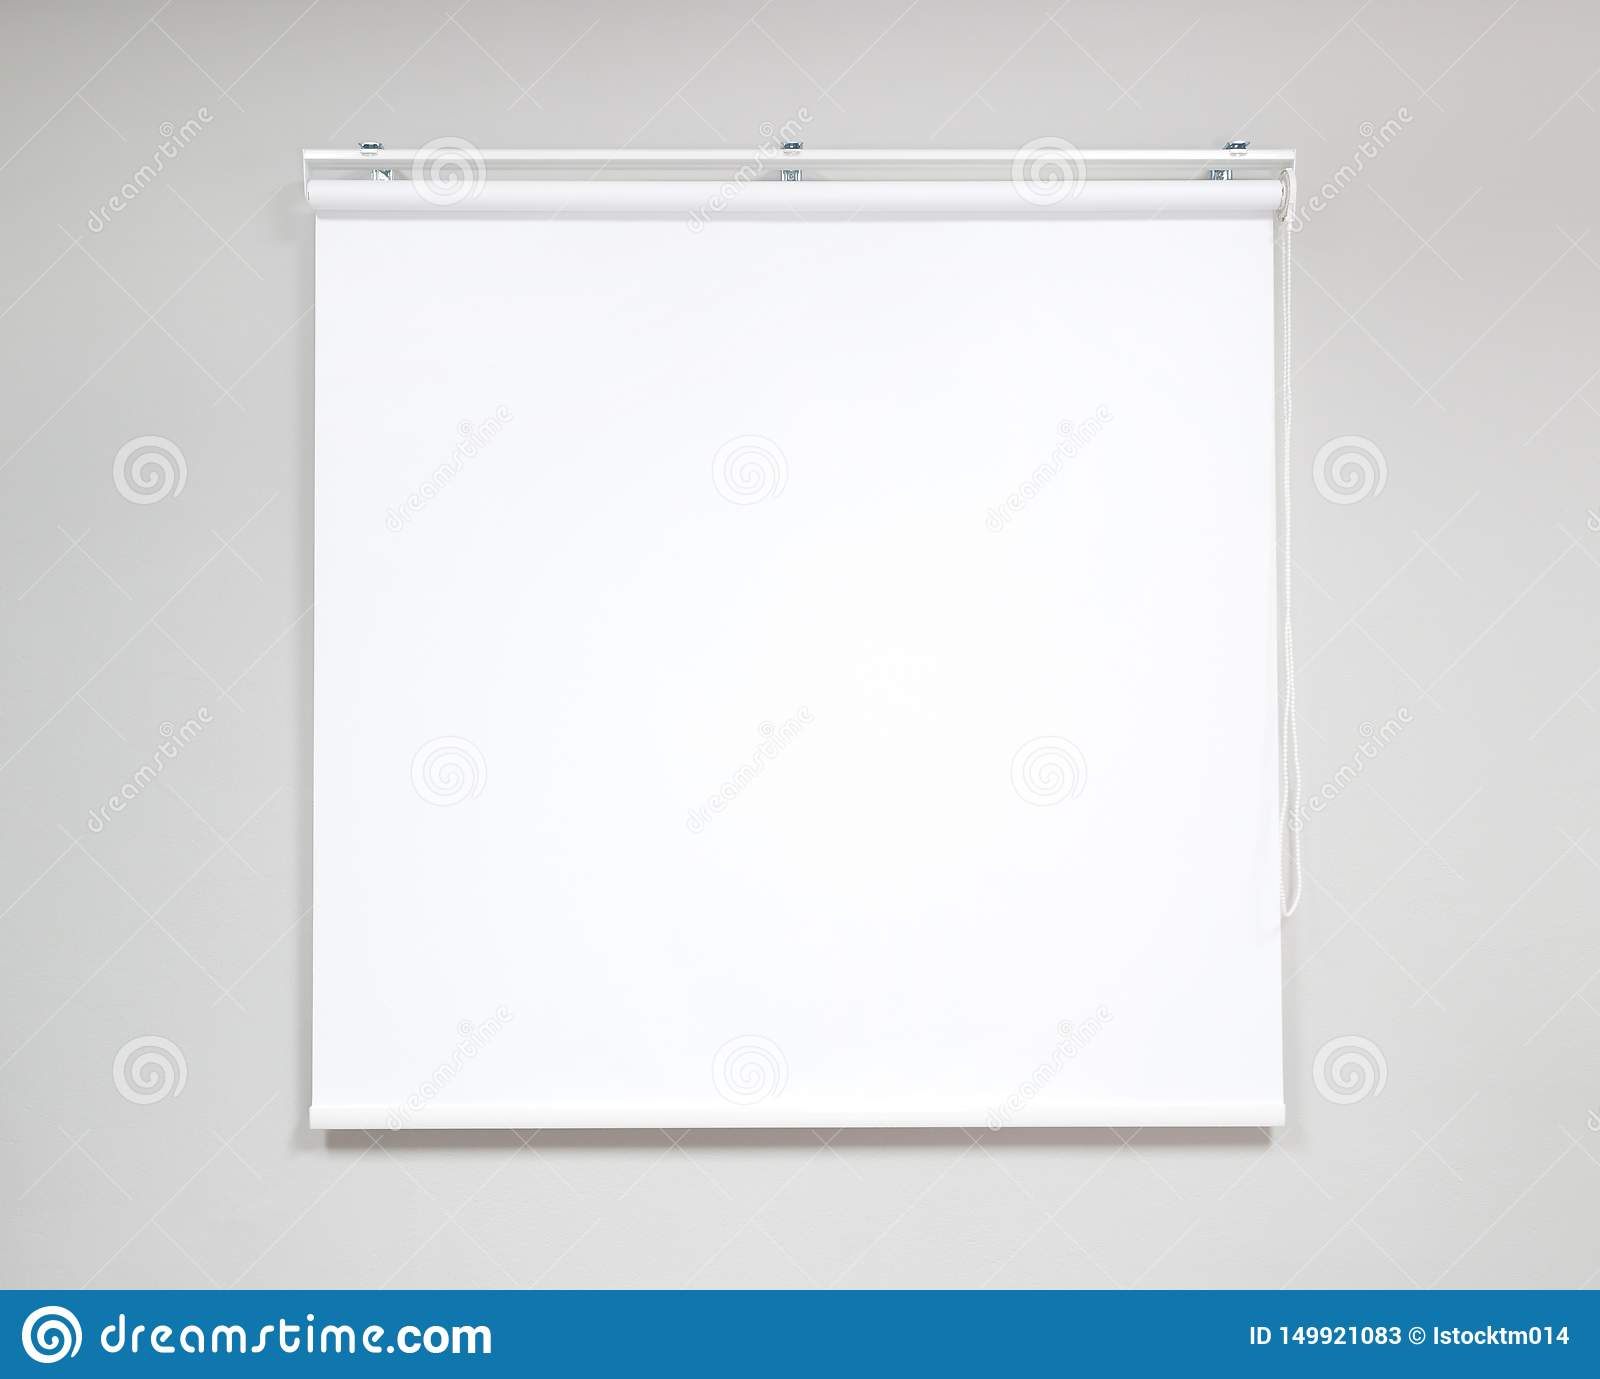 White projector screen for showing information or cinema in office room